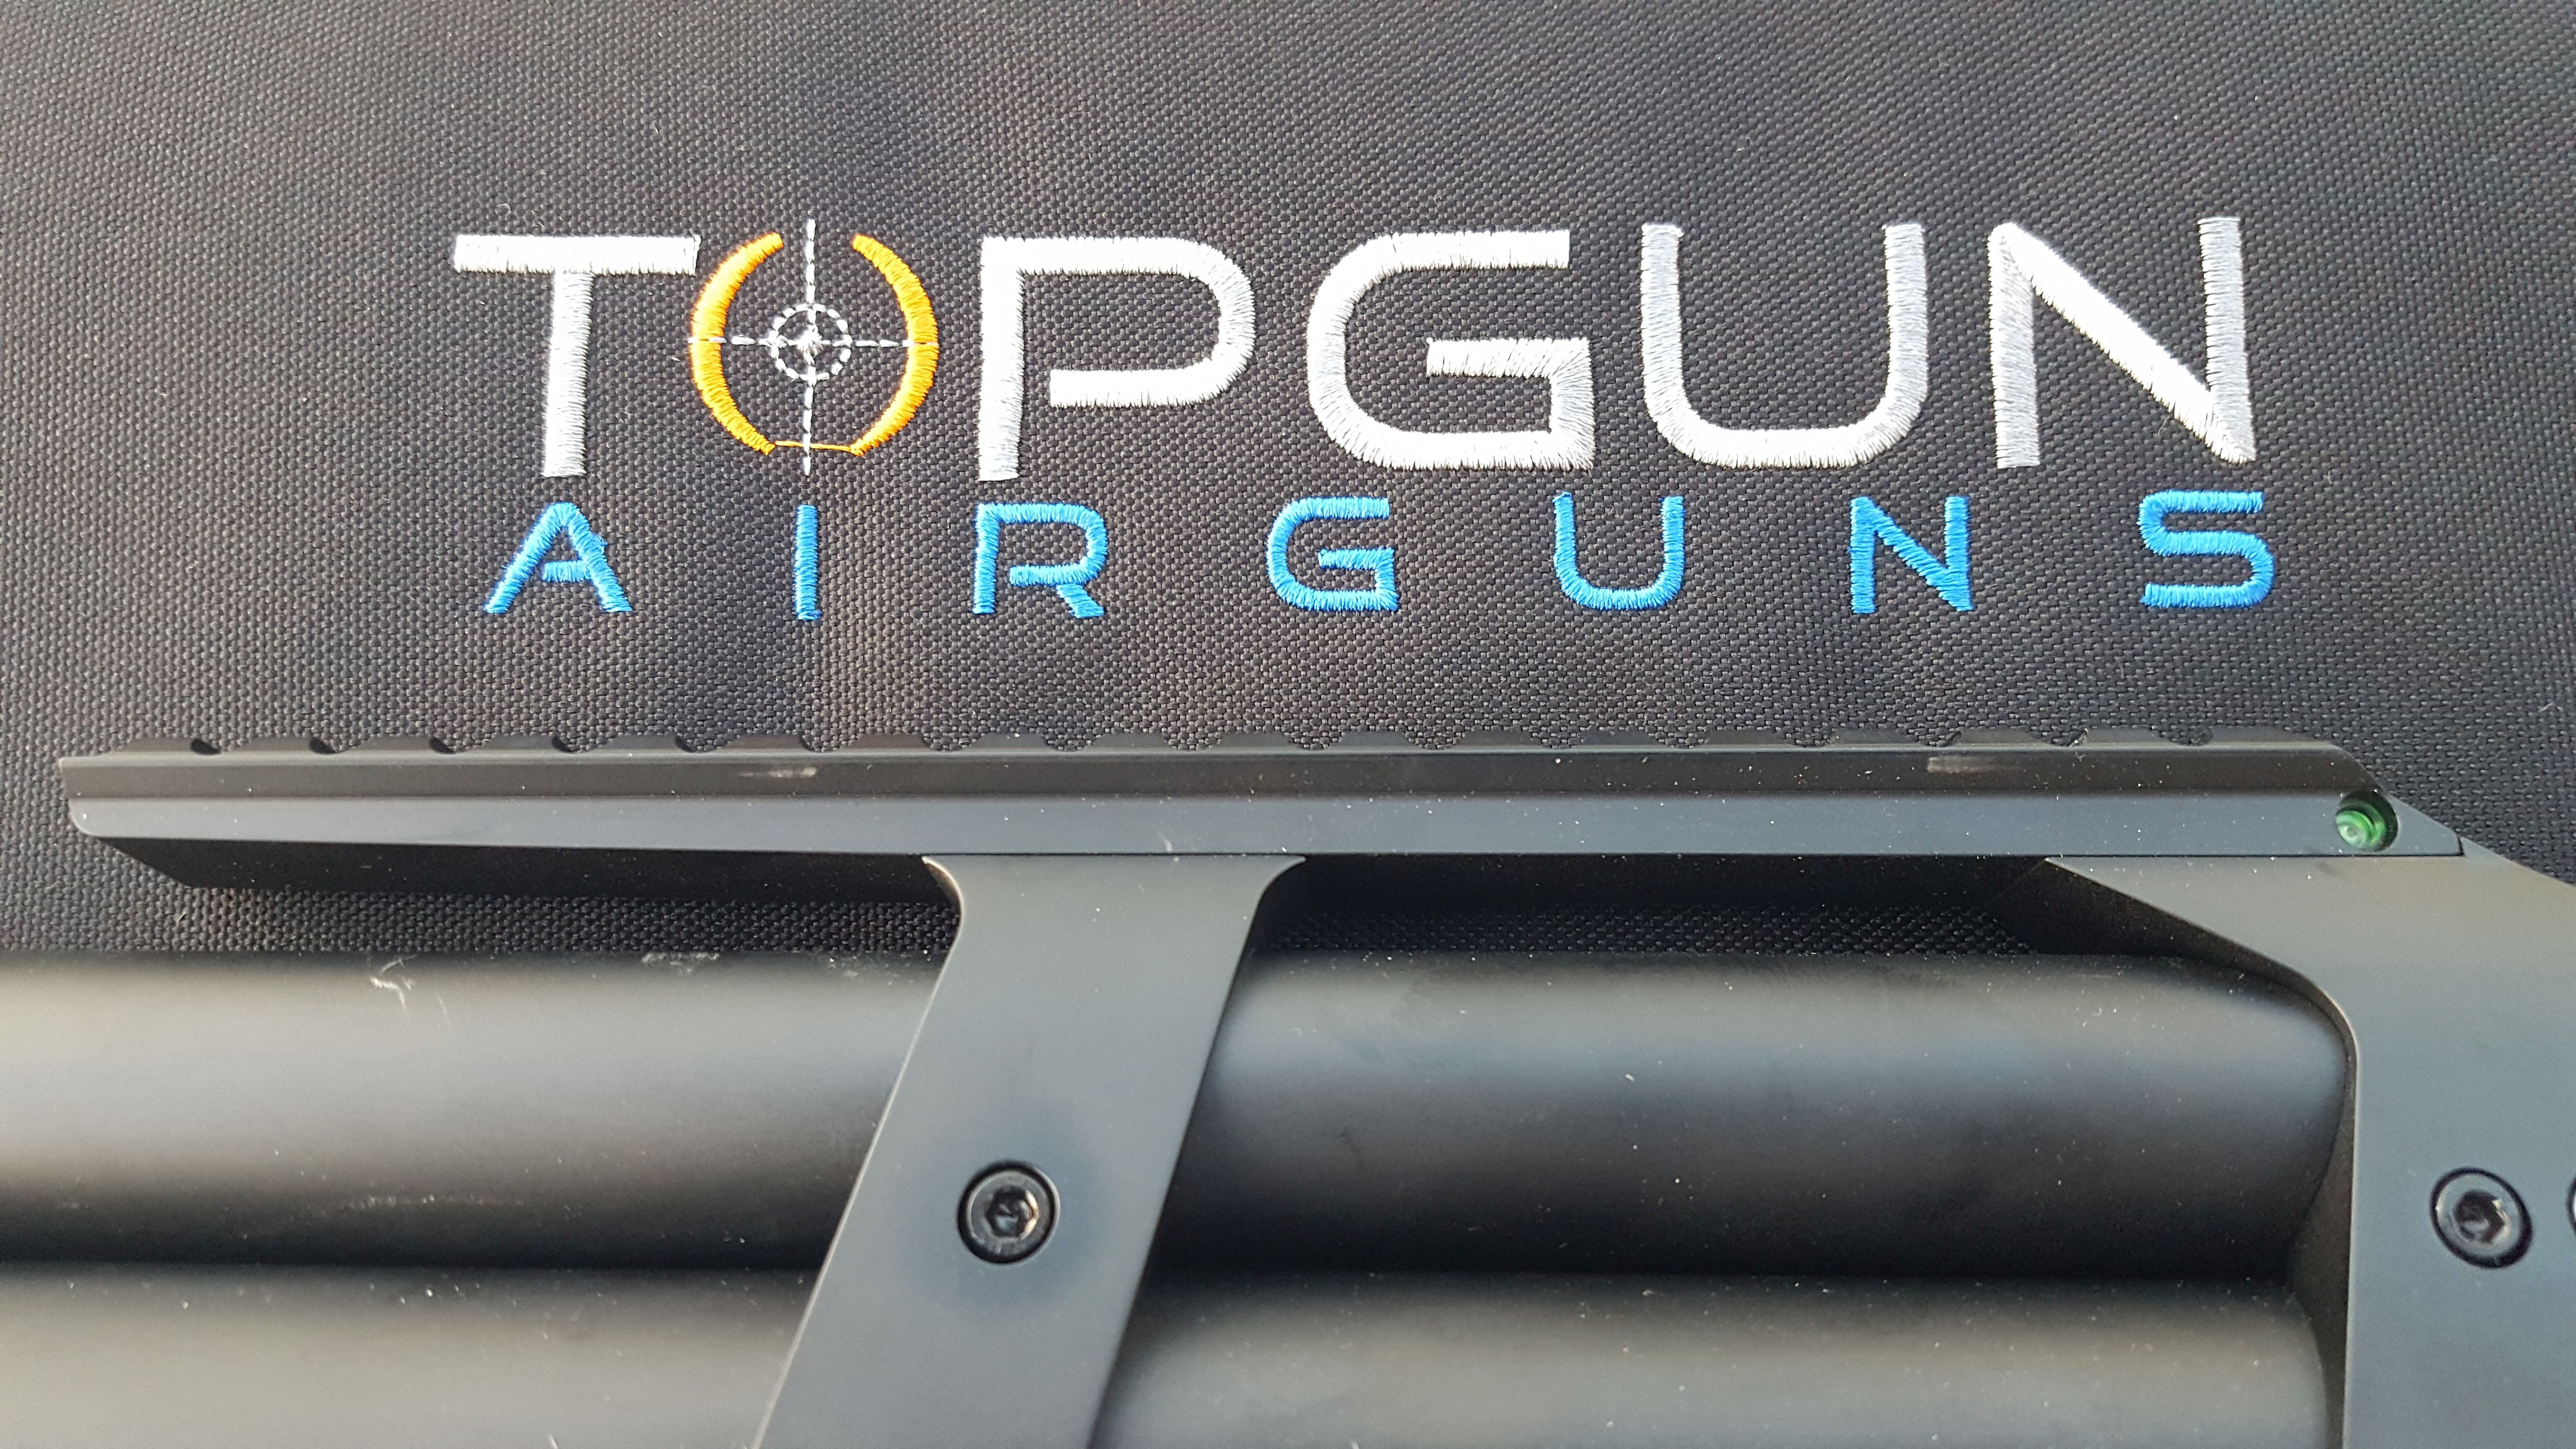 I can't wait to hear about the new Huben - Yellow Airgun